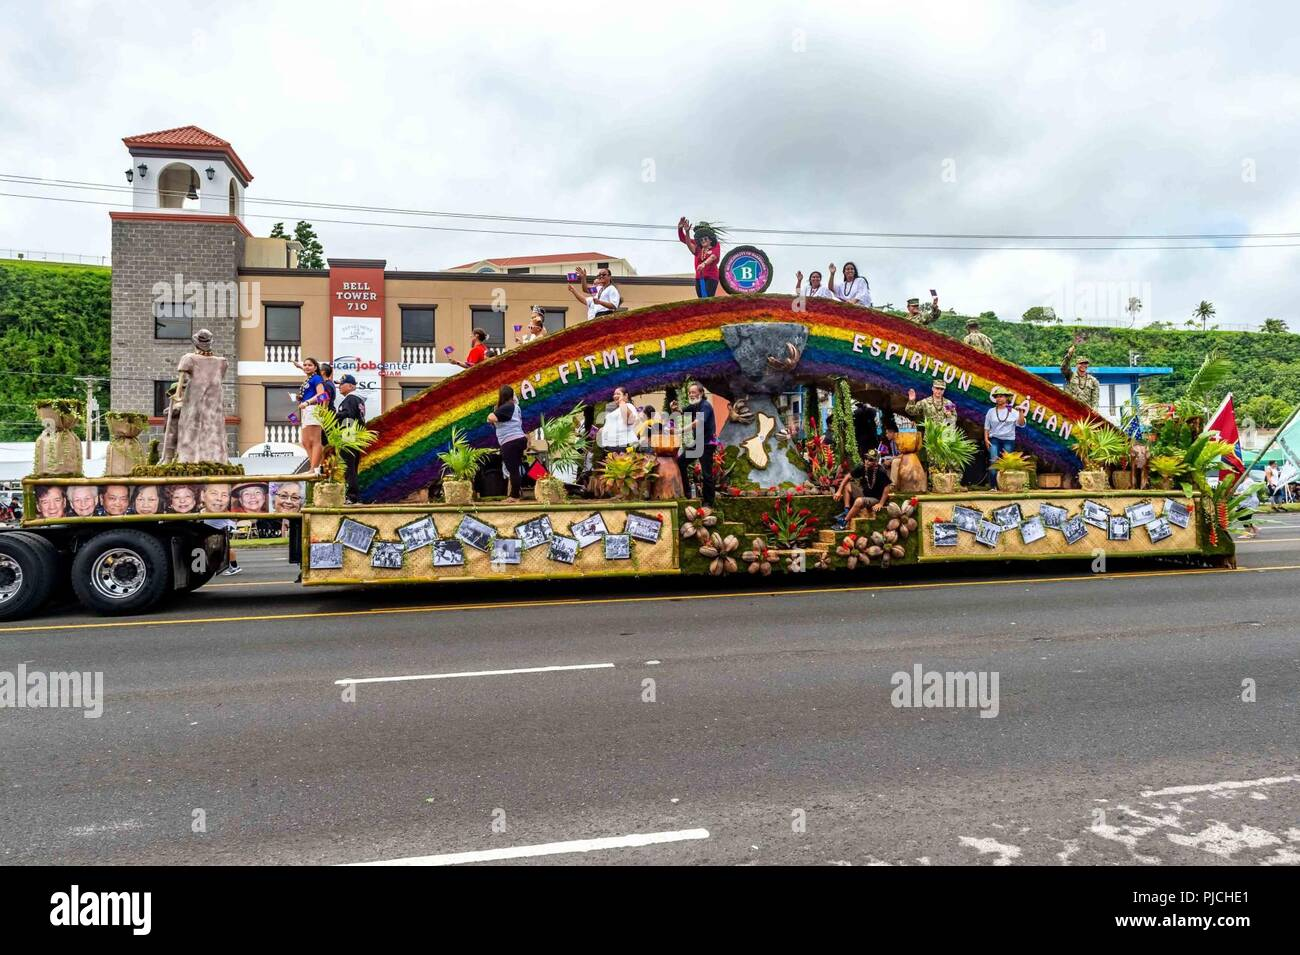 AGANA, Guam (July 21, 2018) Sailors assigned to the 30th Naval Construction Regiment (30 NCR) participate with the Village of Barrigada's and ride on their float during the 74th Anniversary celebration of Guam's Liberation Day. The Battle for Guam began July 21, 1944, when American forces invaded Guam to liberate it from the Japanese occupiers. Barrigada is 30 NCR's Sister Village, which is a partnership between the village and command for community service and outreach opportunities. (US. Navy Stock Photo